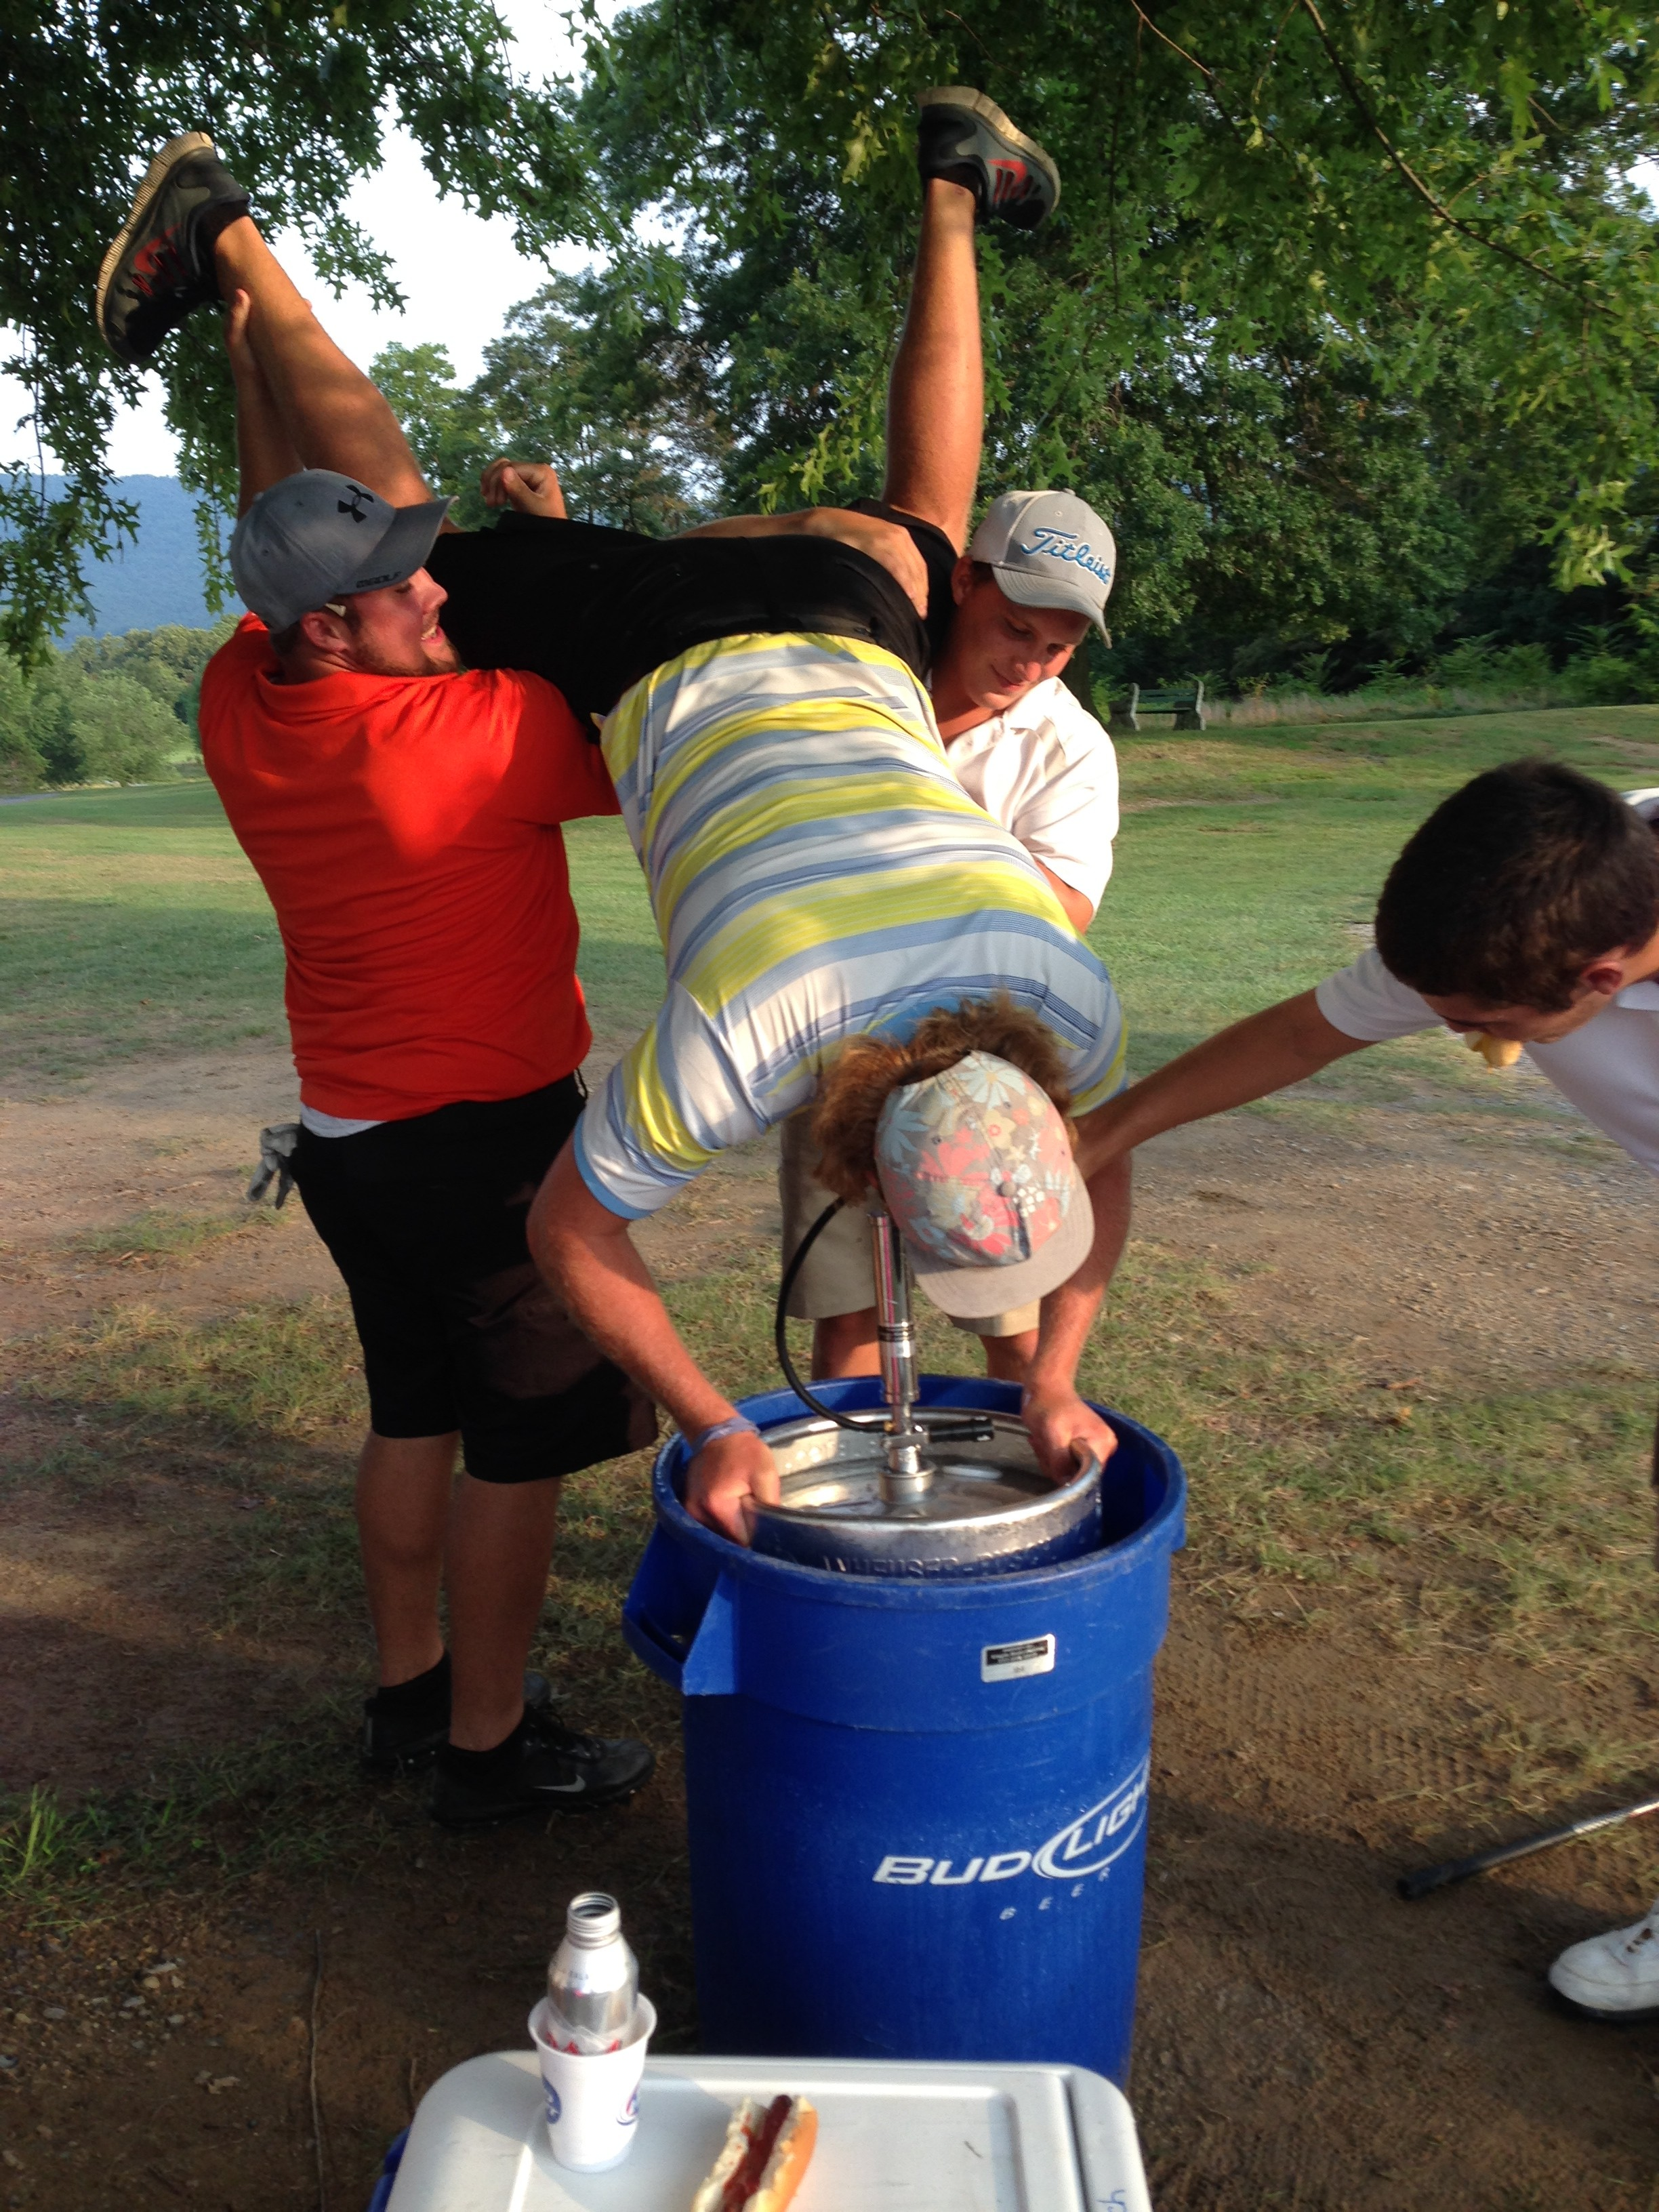 Keg stands mid round. TFM.